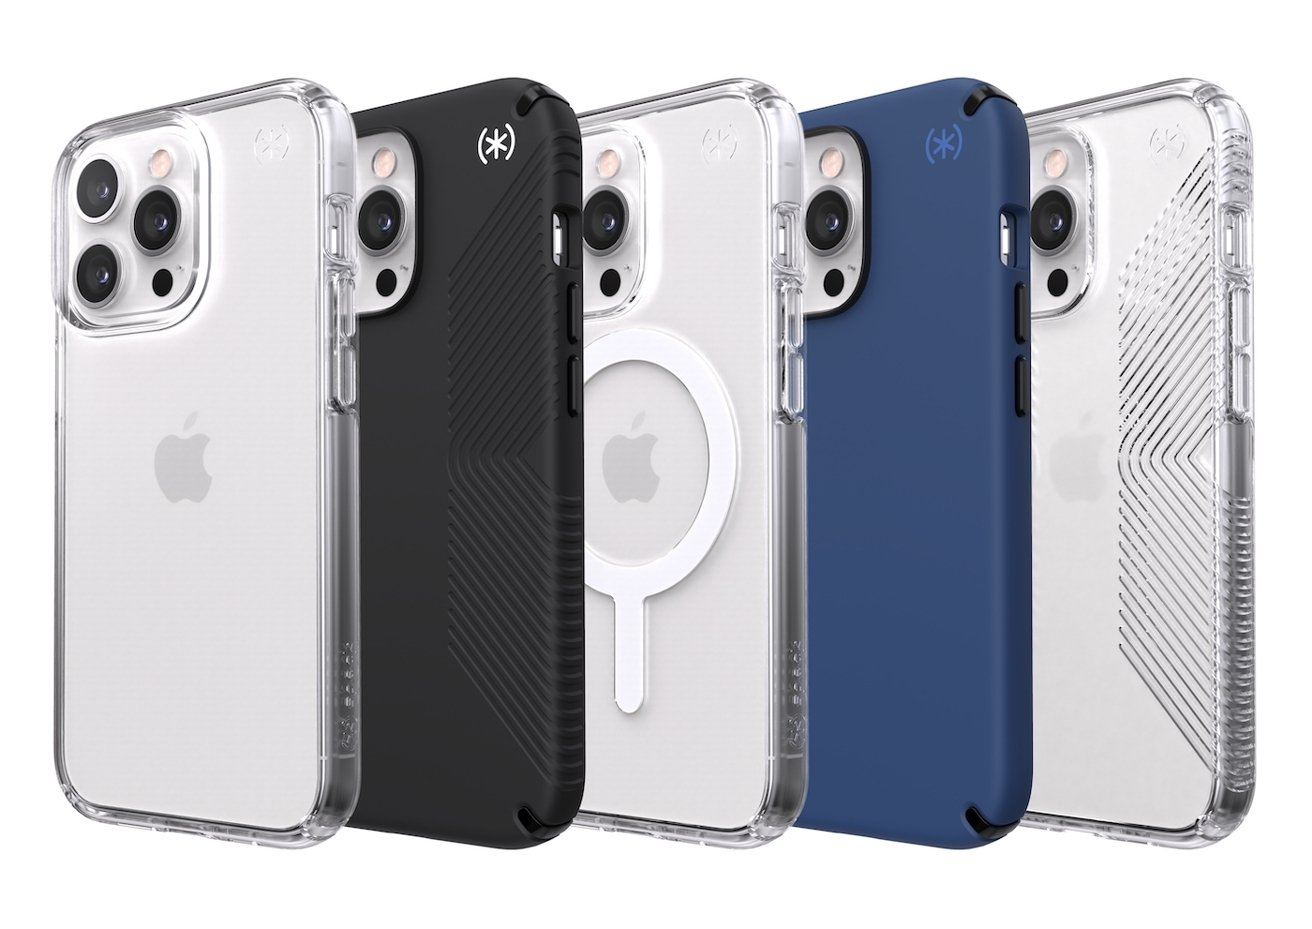 Speck's lineup of iPhone 13 cases